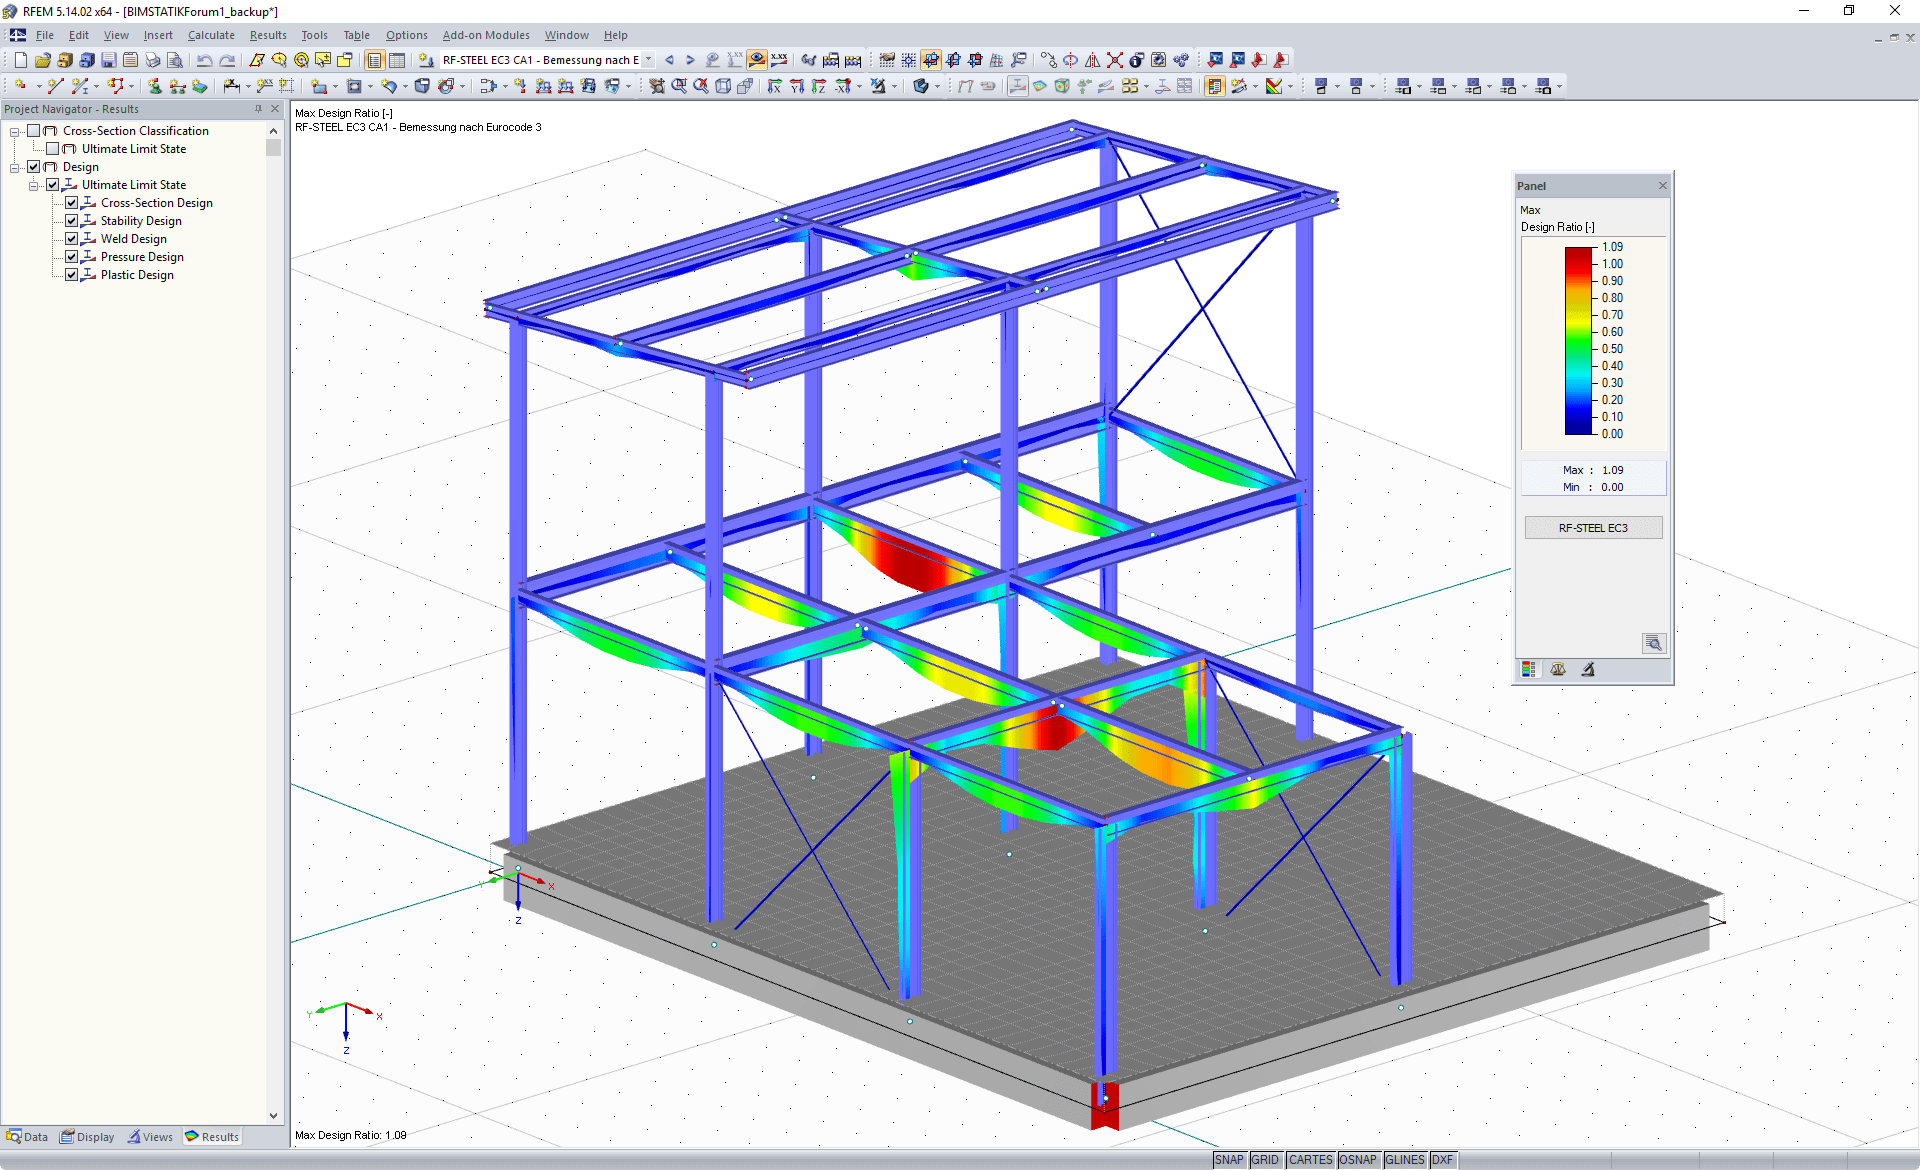 Display of maximum design ratio of the RF-STEEL EC3 add-on module in RFEM